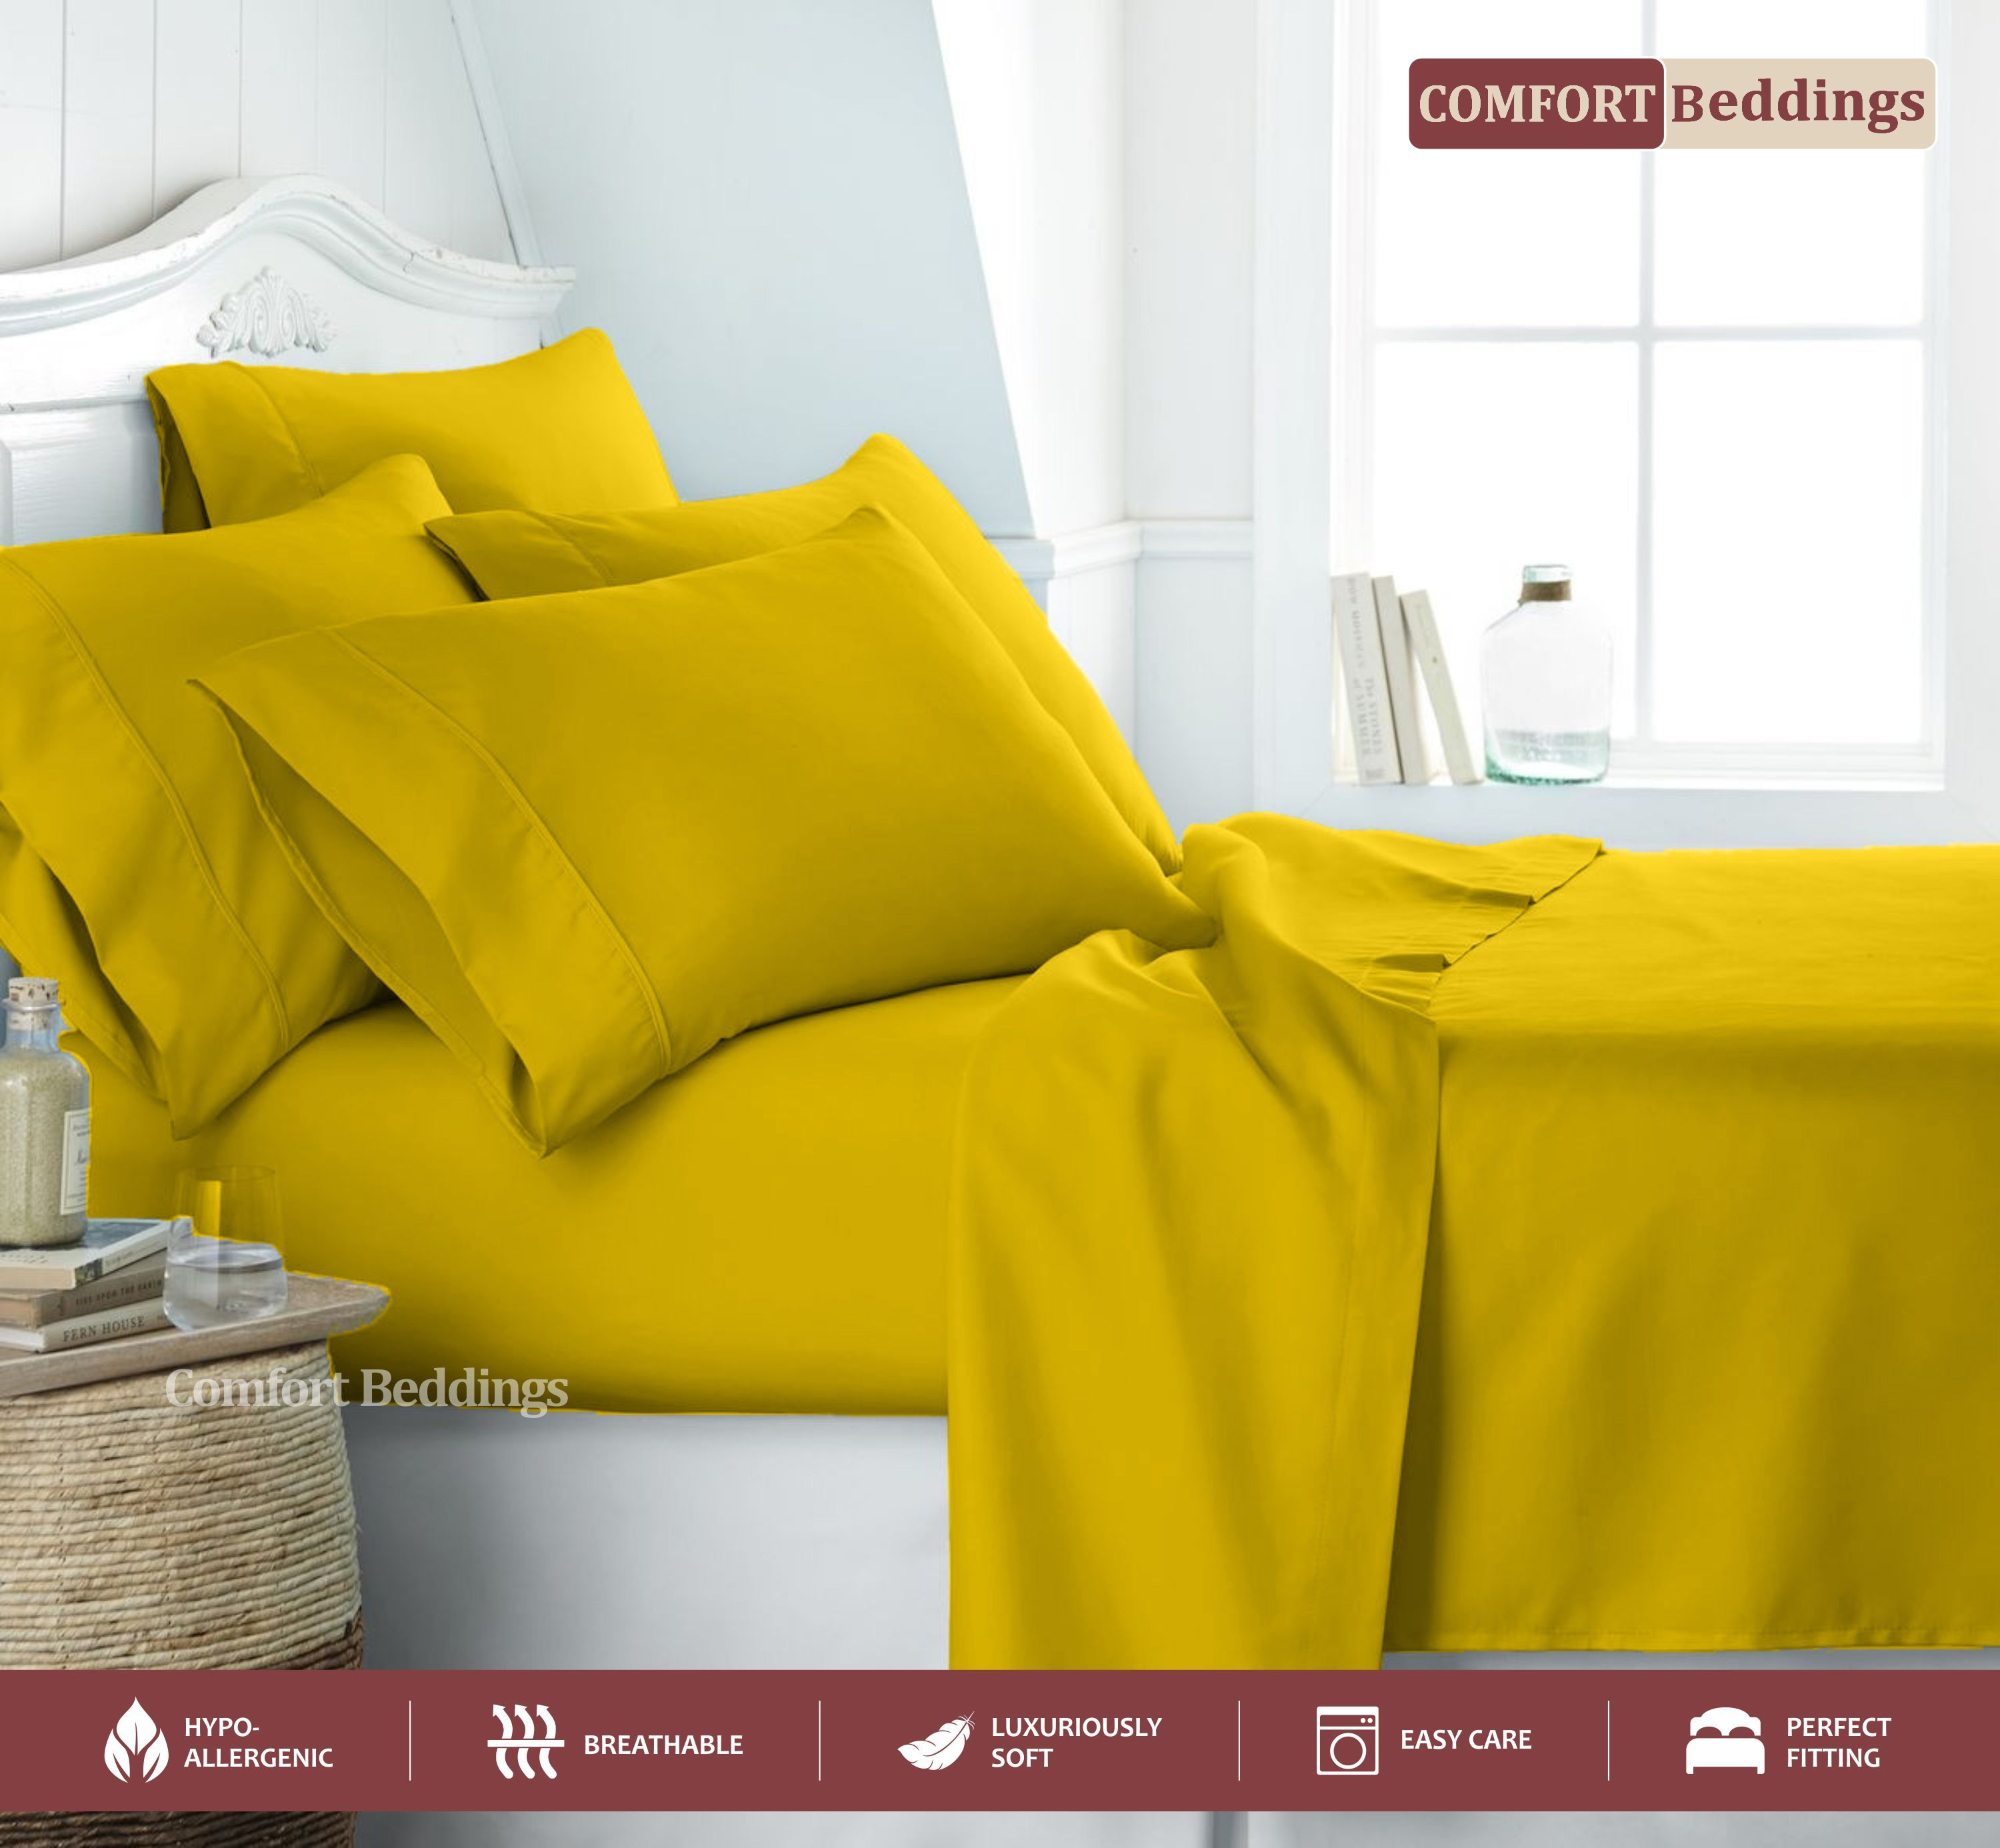 Egyptian Cotton Queen Sheet Set Is An Amazing Addition To The Bedroom Because They Are Very Relaxed And Rob Cotton Sheet Sets Deep Pocket Sheets Bed Sheet Sets